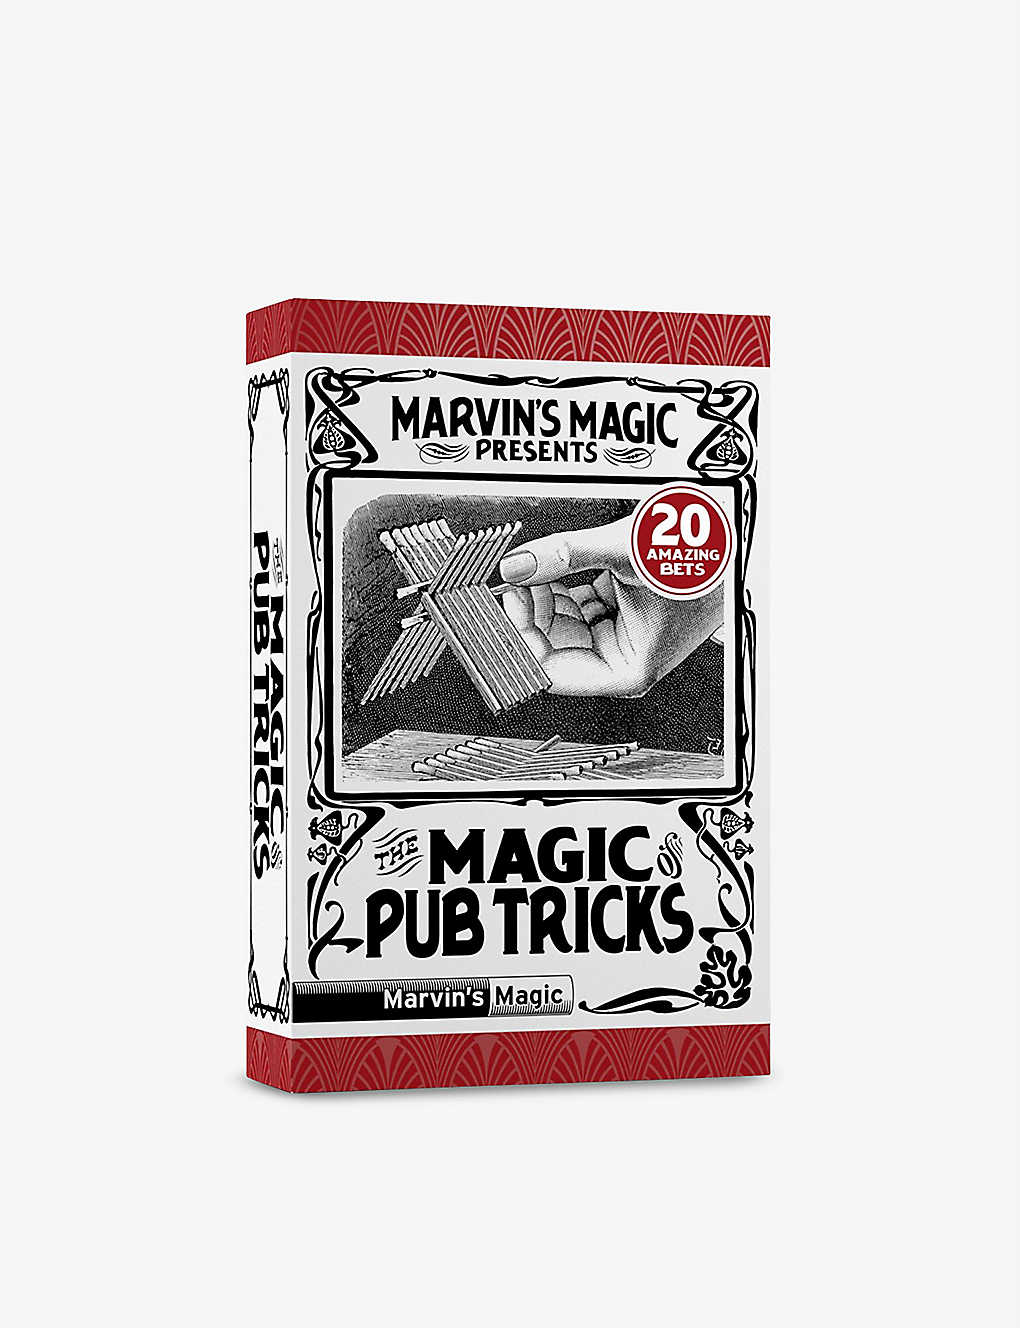 MARVINS MAGIC: The Magic Of Pub Tricks set